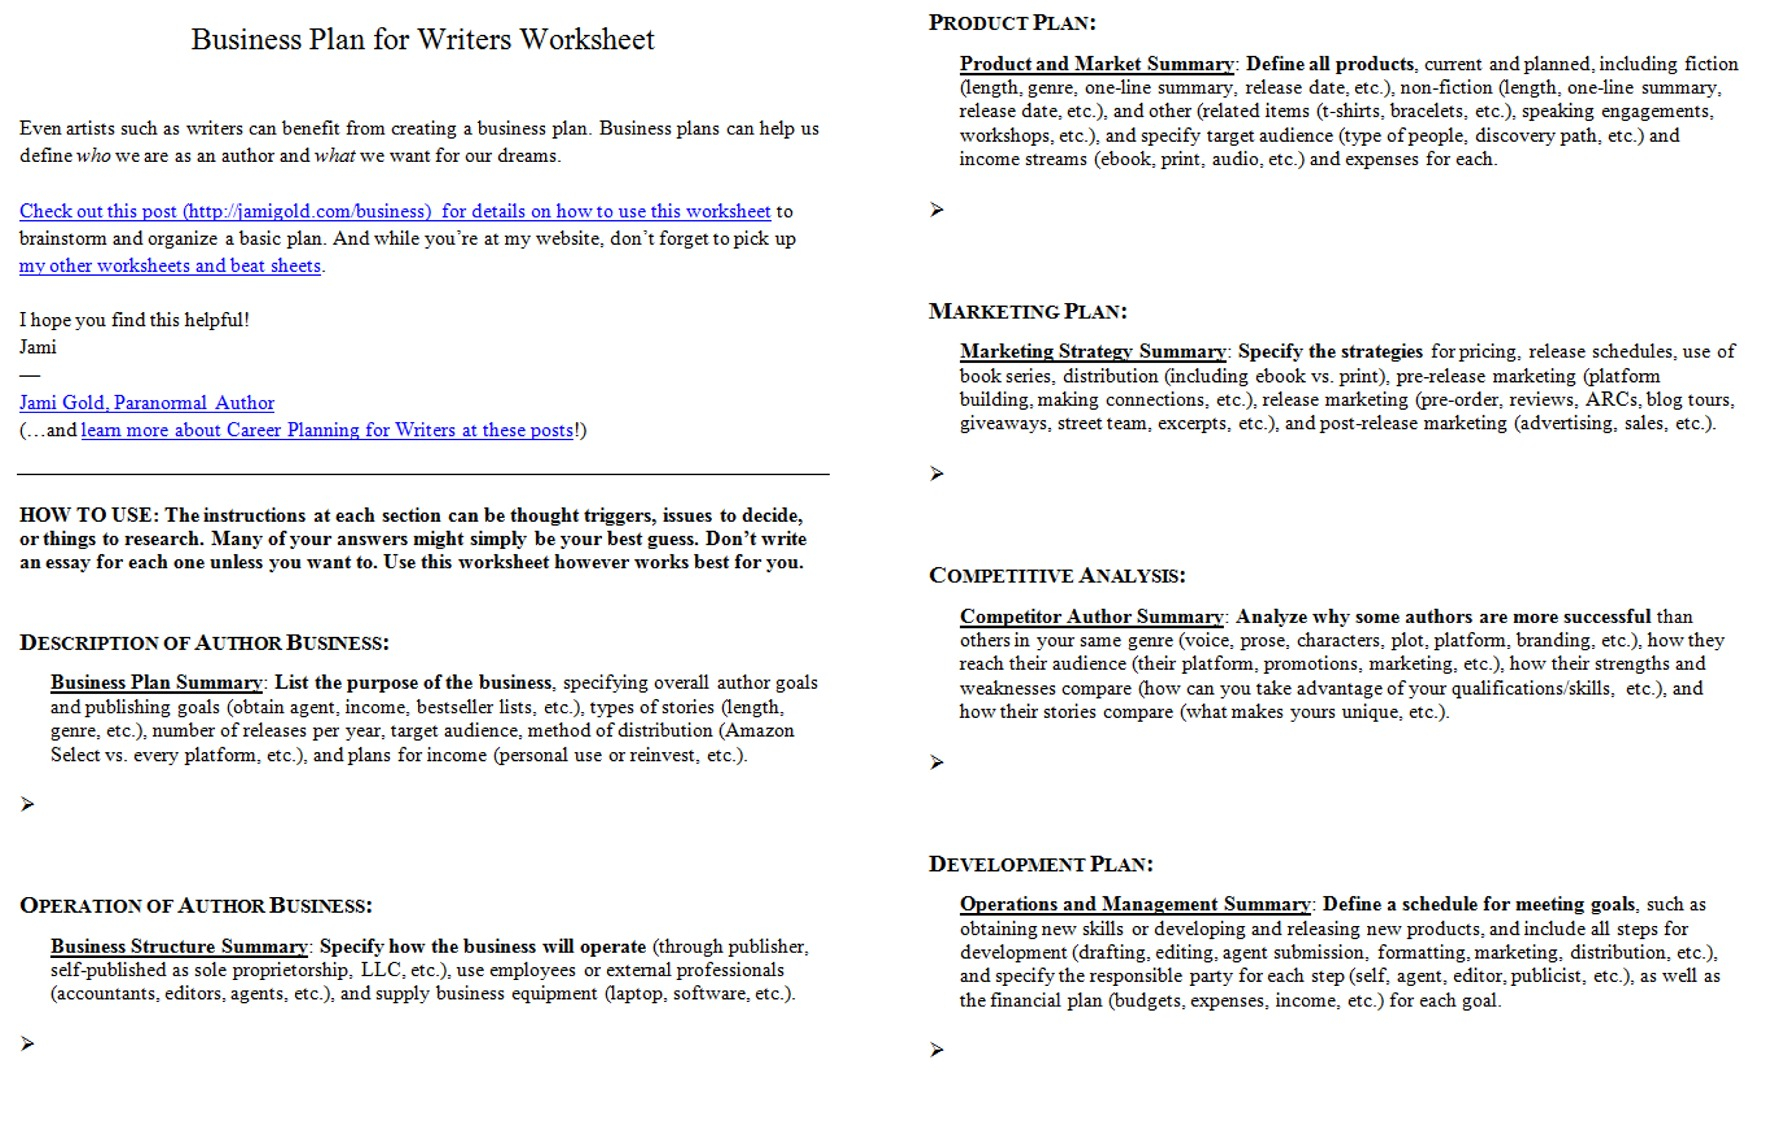 Proatmealus  Sweet Worksheets For Writers  Jami Gold Paranormal Author With Fascinating Screen Shot Of Both Pages Of The Business Plan For Writers Worksheet With Nice Algebra Worksheets For Th Grade Also Learning Percentages Worksheets In Addition Letter R Worksheets Kindergarten And Naming Compounds Chemistry Worksheet As Well As Prefix Worksheets Free Additionally Science And The Scientific Method Worksheet Answer Key From Jamigoldcom With Proatmealus  Fascinating Worksheets For Writers  Jami Gold Paranormal Author With Nice Screen Shot Of Both Pages Of The Business Plan For Writers Worksheet And Sweet Algebra Worksheets For Th Grade Also Learning Percentages Worksheets In Addition Letter R Worksheets Kindergarten From Jamigoldcom